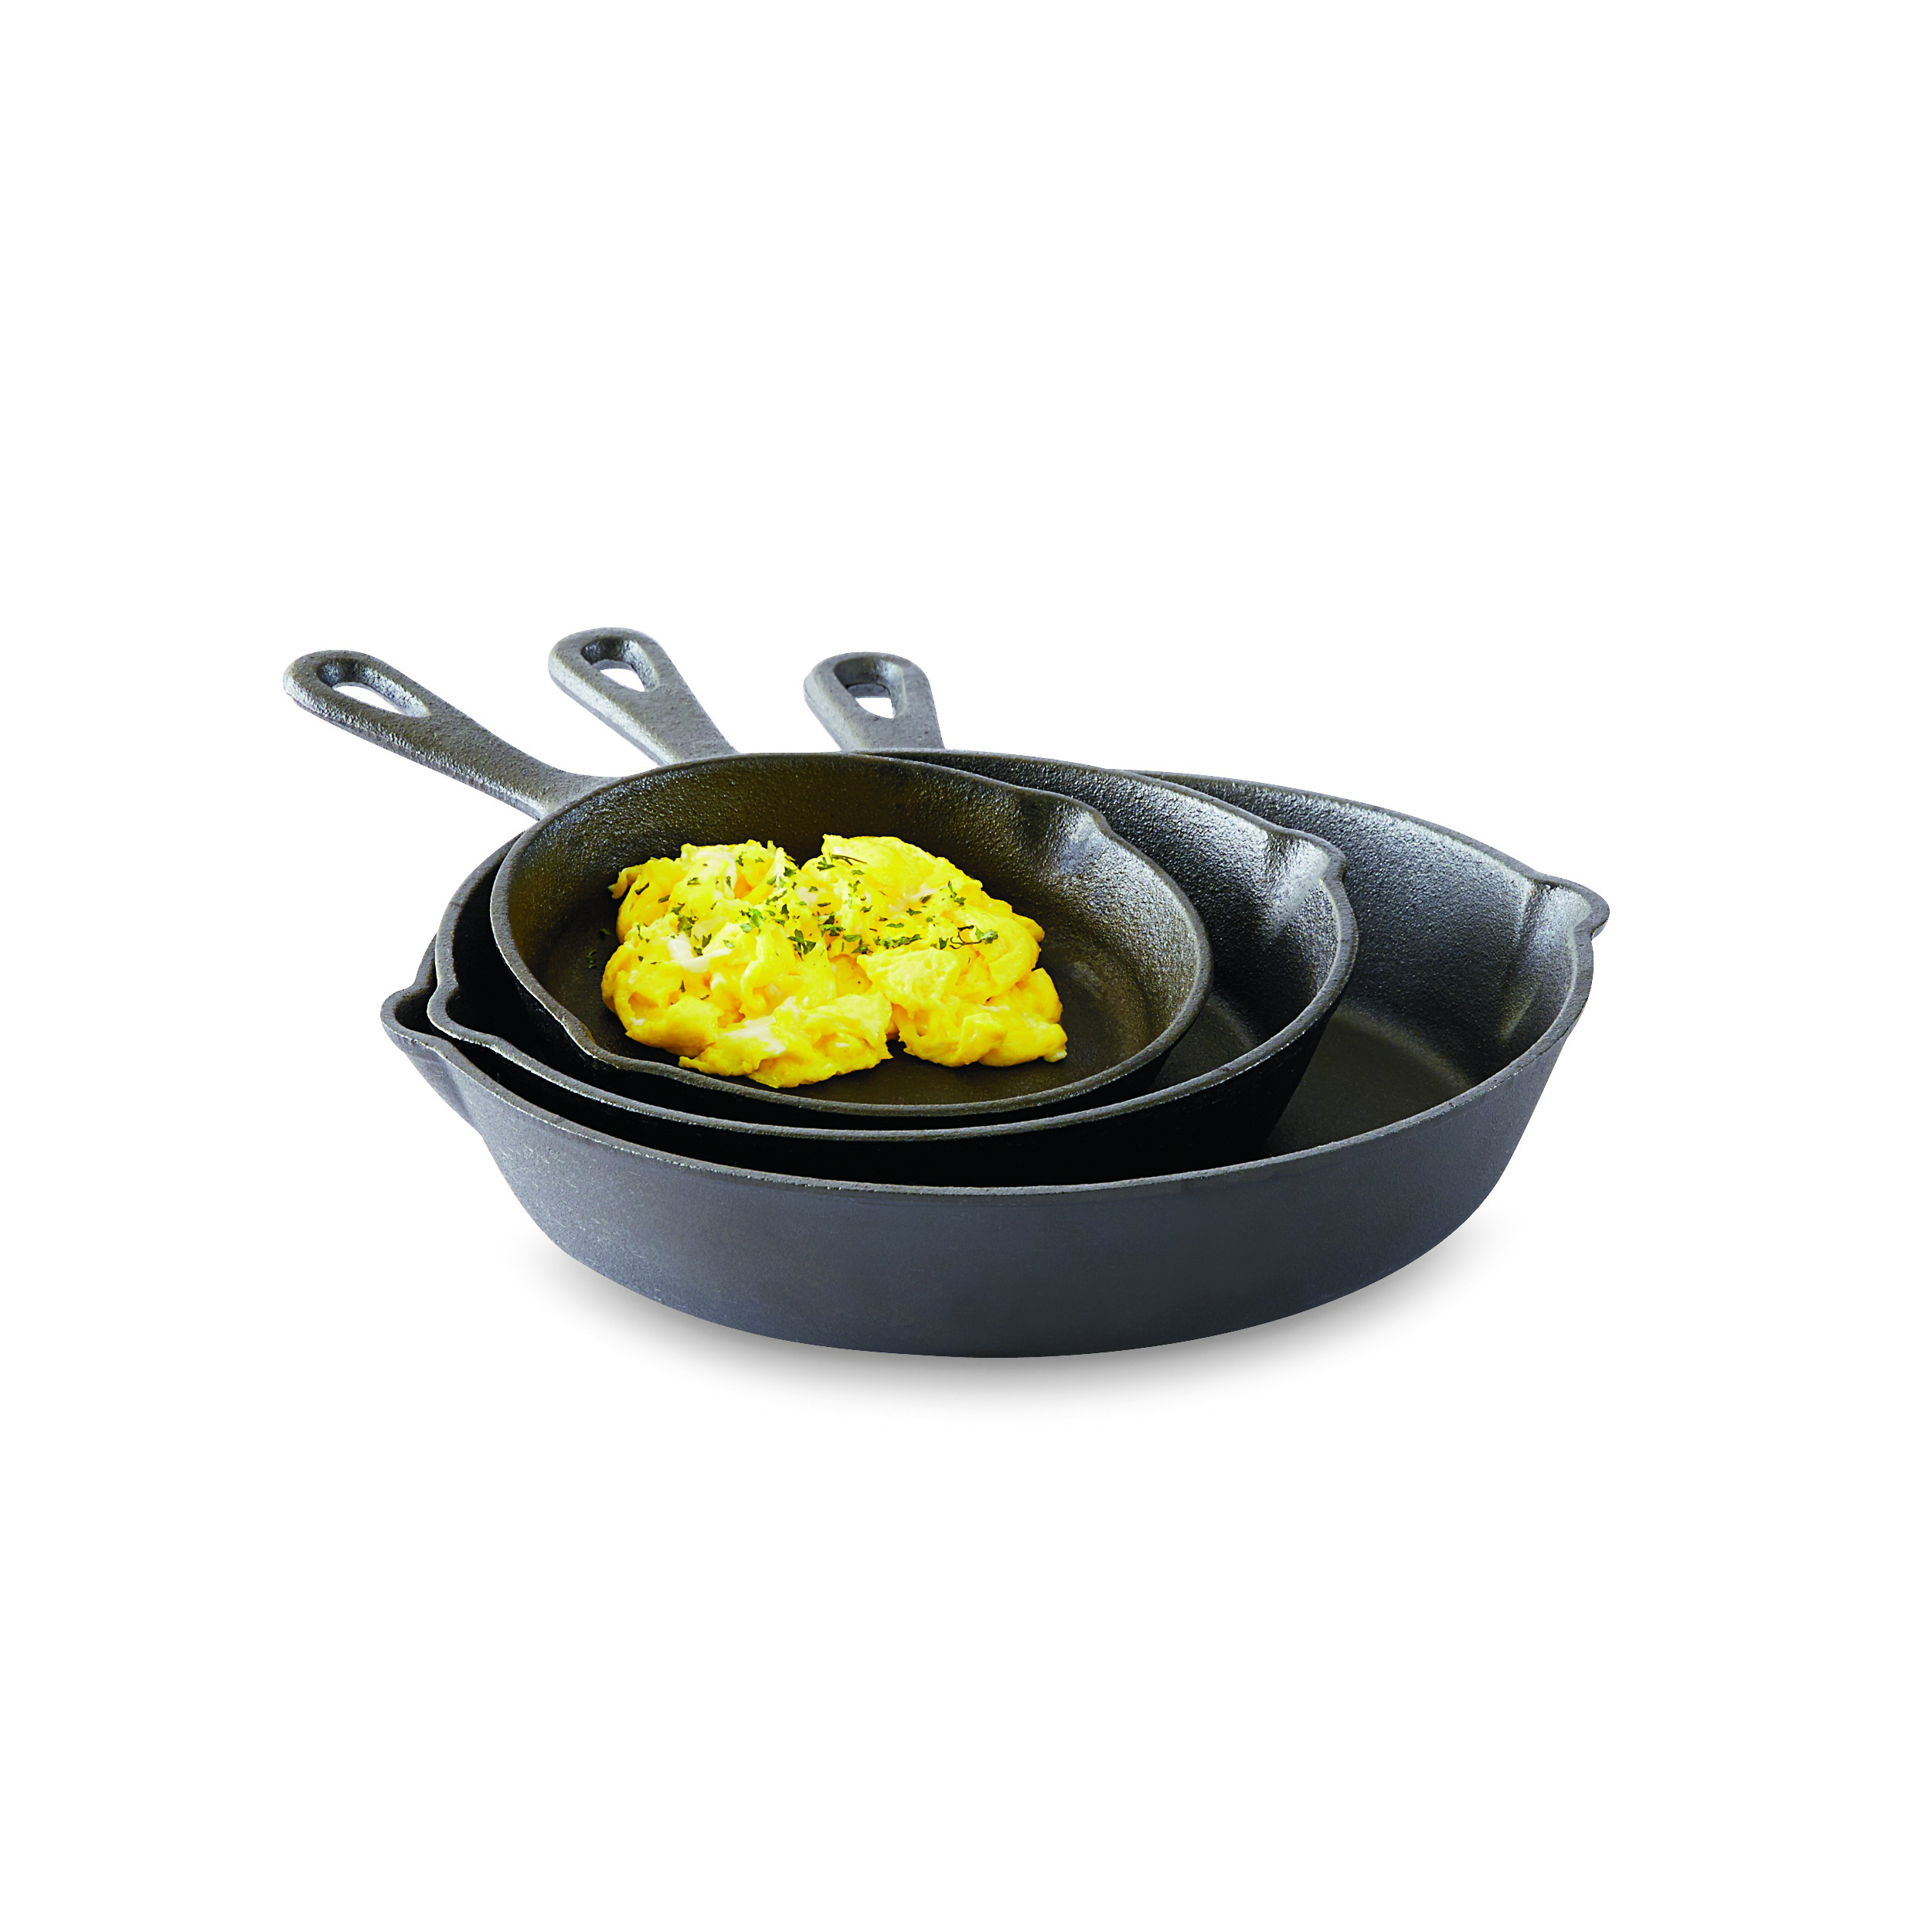 Essential Home 3-Piece Cast Iron Fry Pan Set